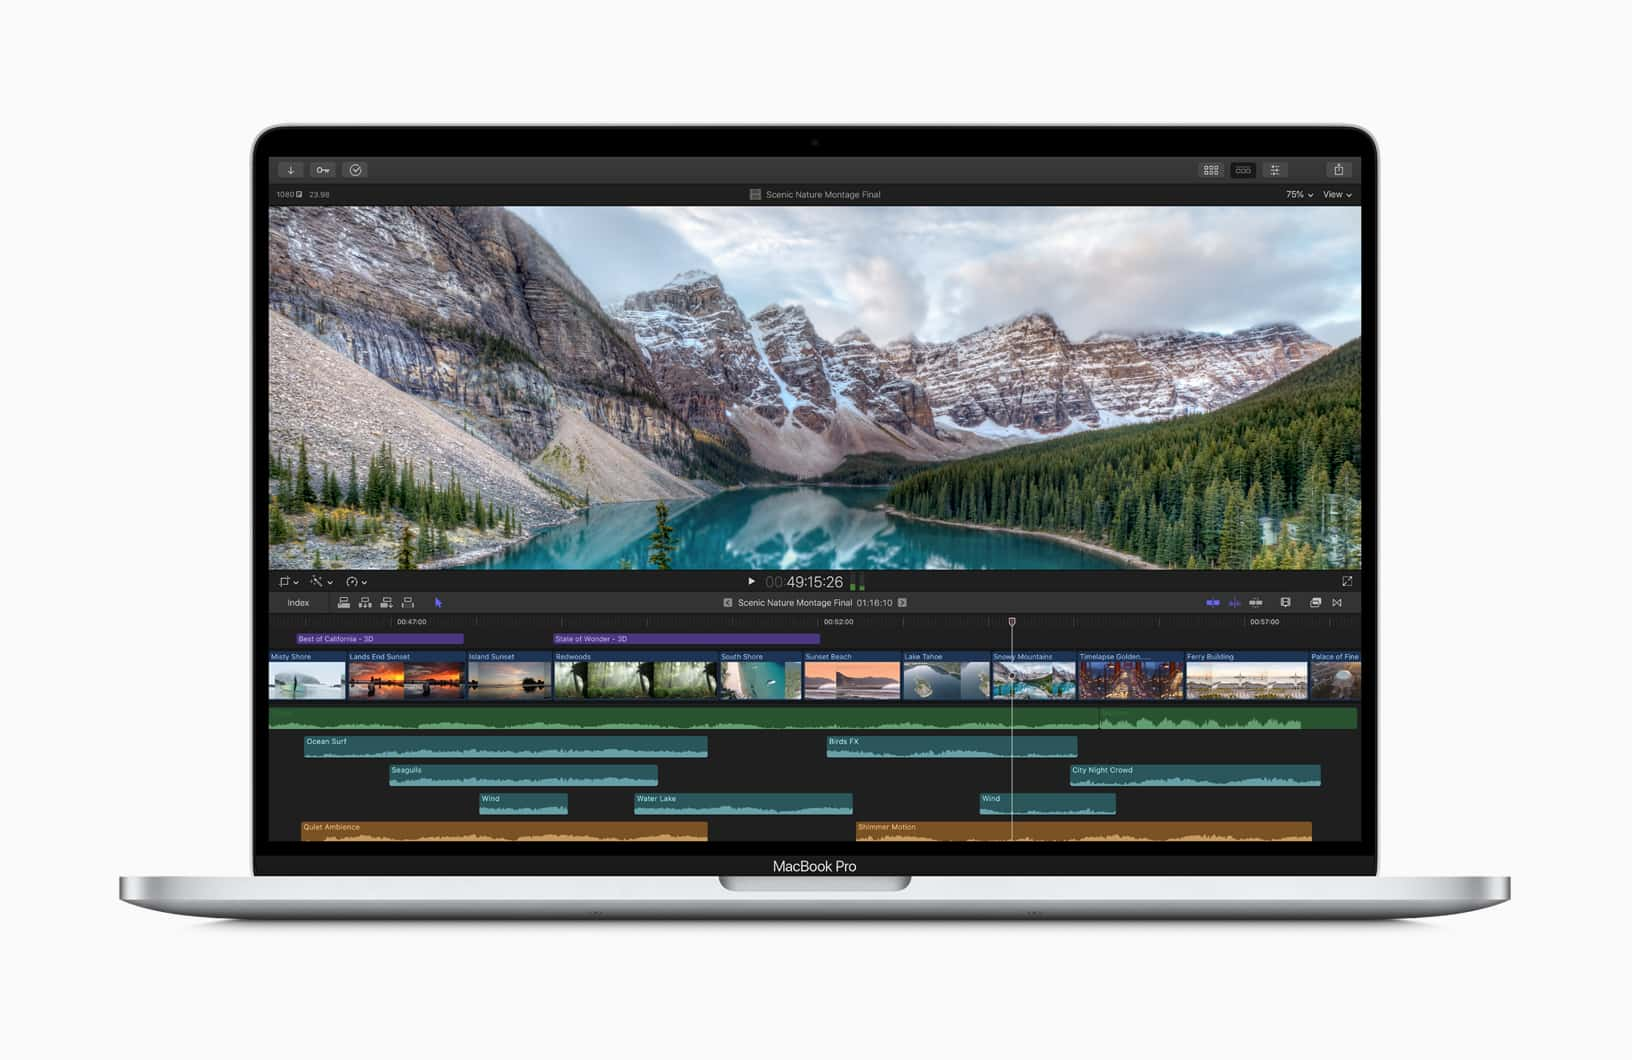 Apple calls the new 16-inch MacBook Pro the most powerful pro notebook yet